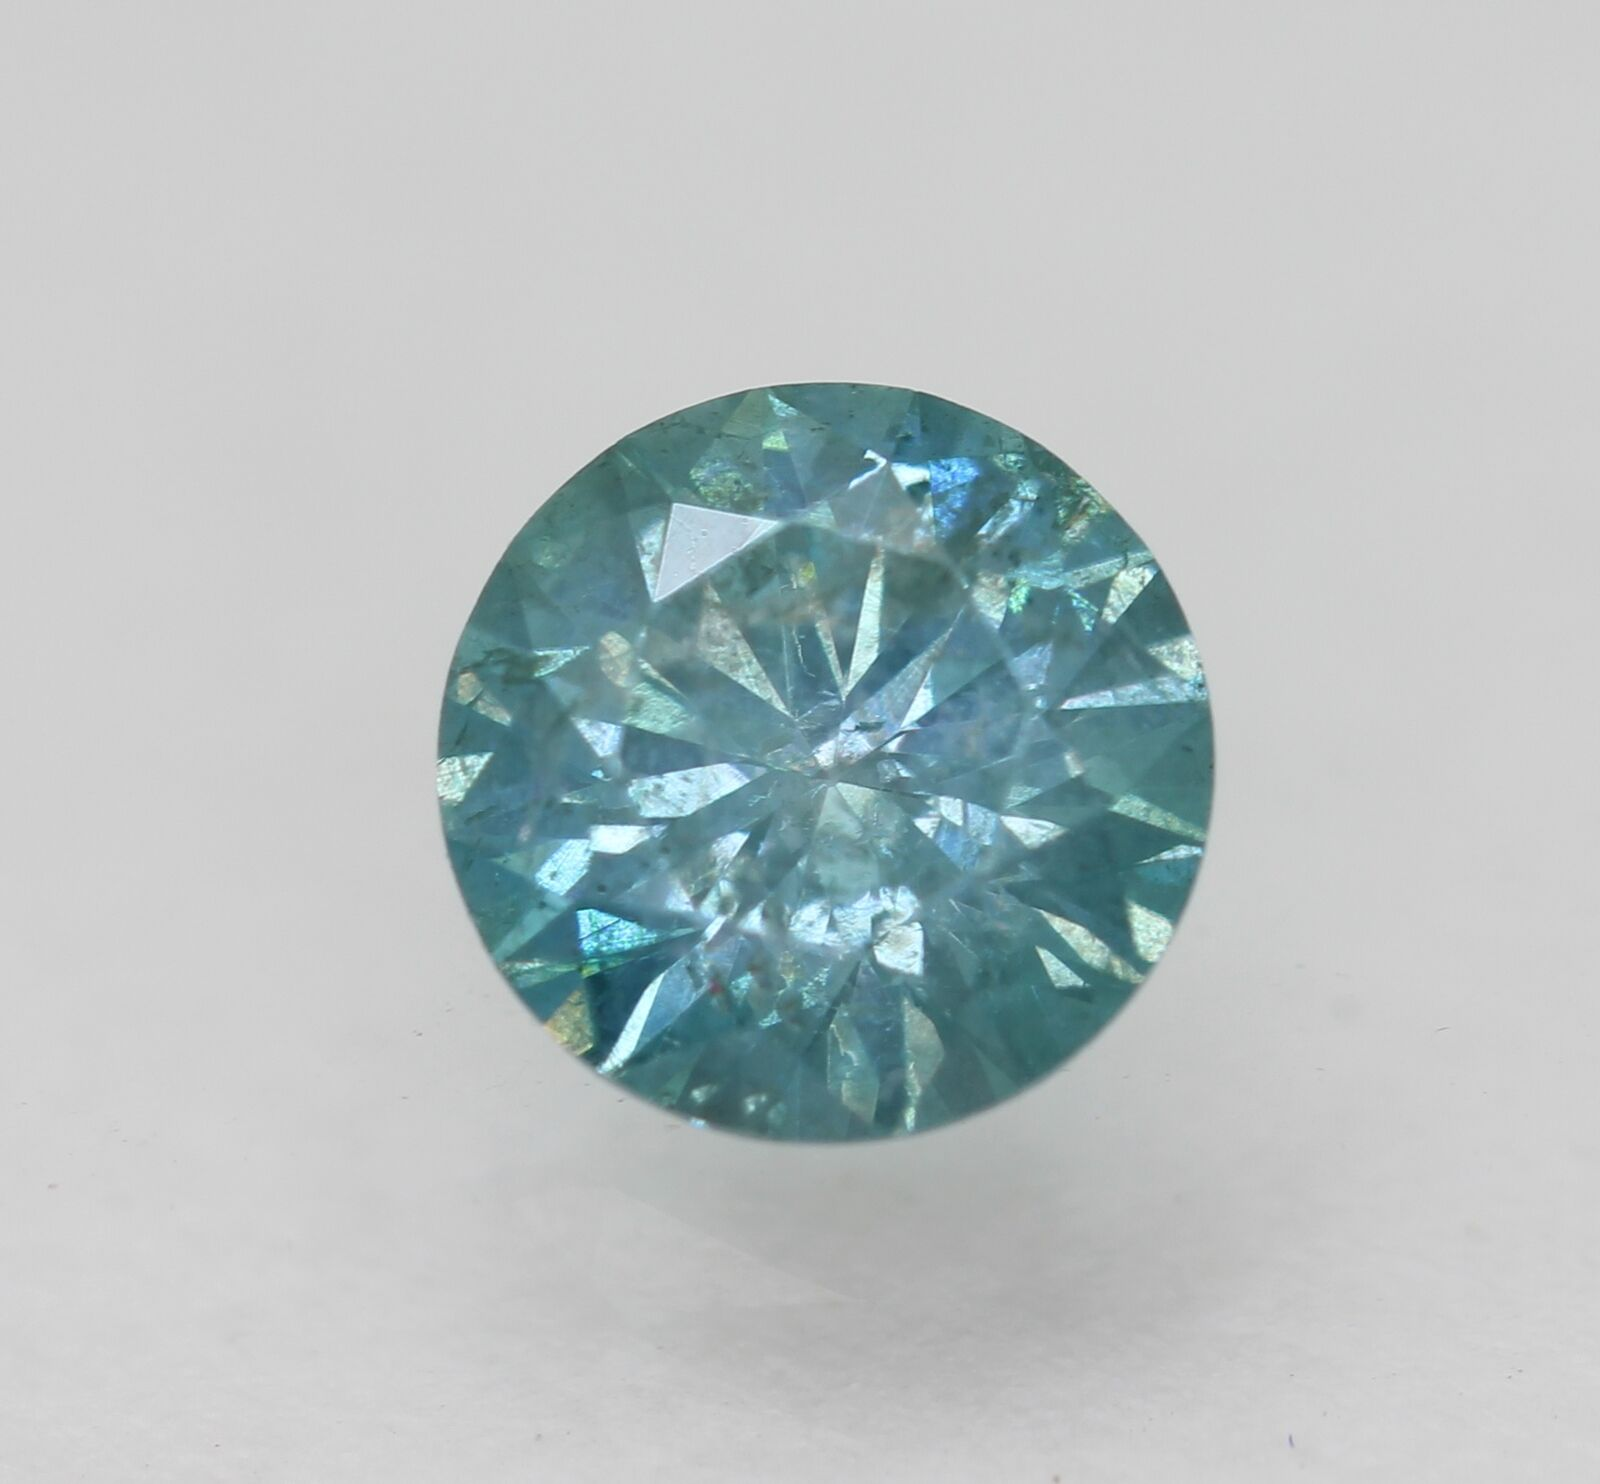 Certified 0.64 Carat Intense Blue SI1 Round Brilliant Natural Diamond 5.54mm